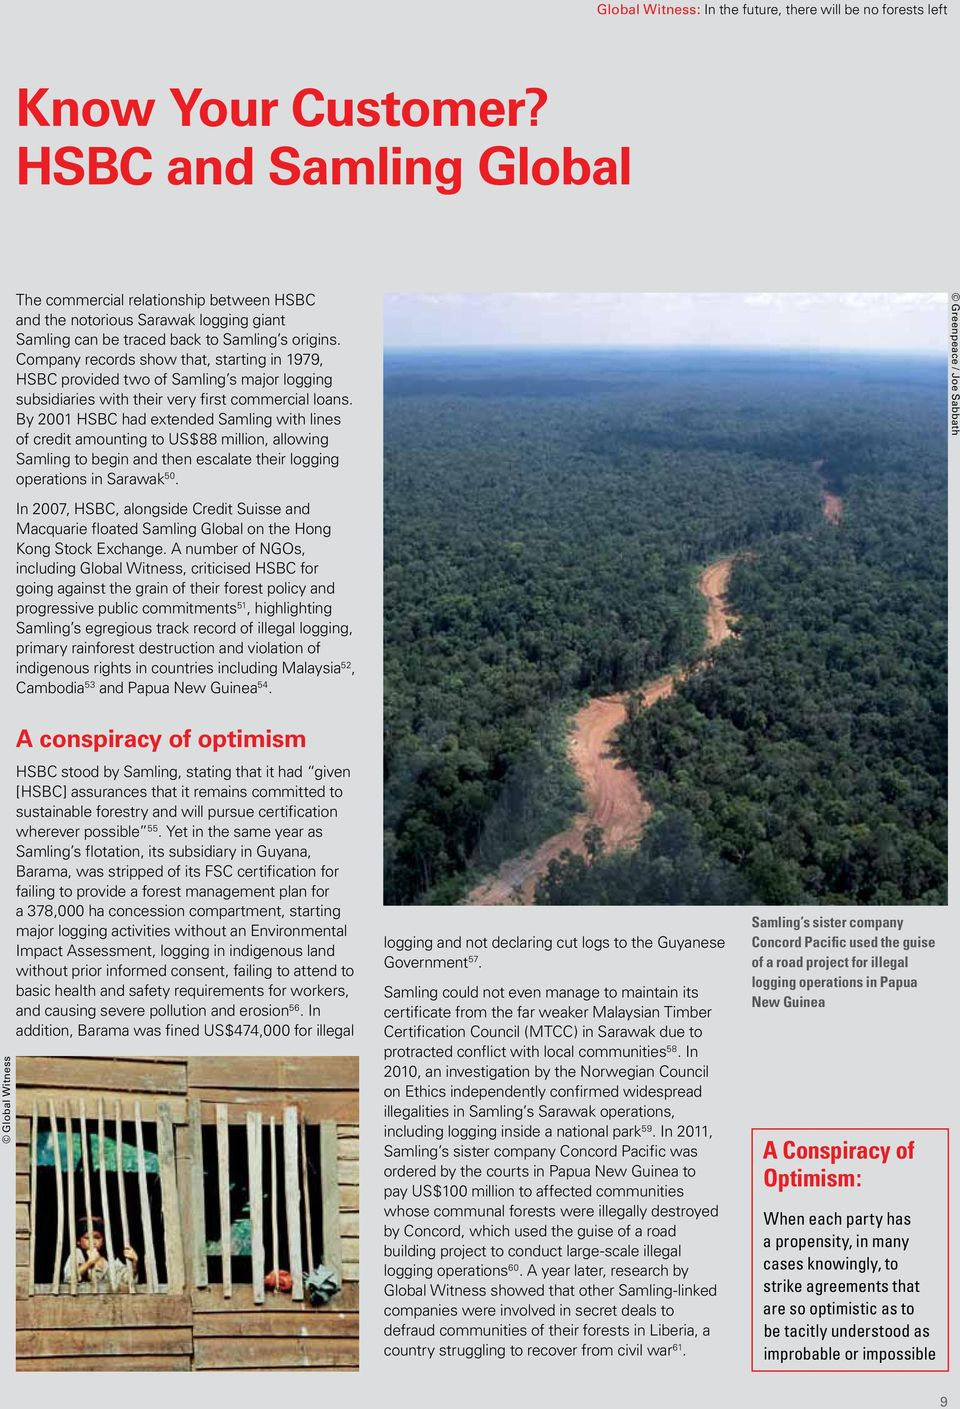 By 2001 HSBC had extended Samling with lines of credit amounting to US$88 million, allowing Samling to begin and then escalate their logging operations in Sarawak 50.